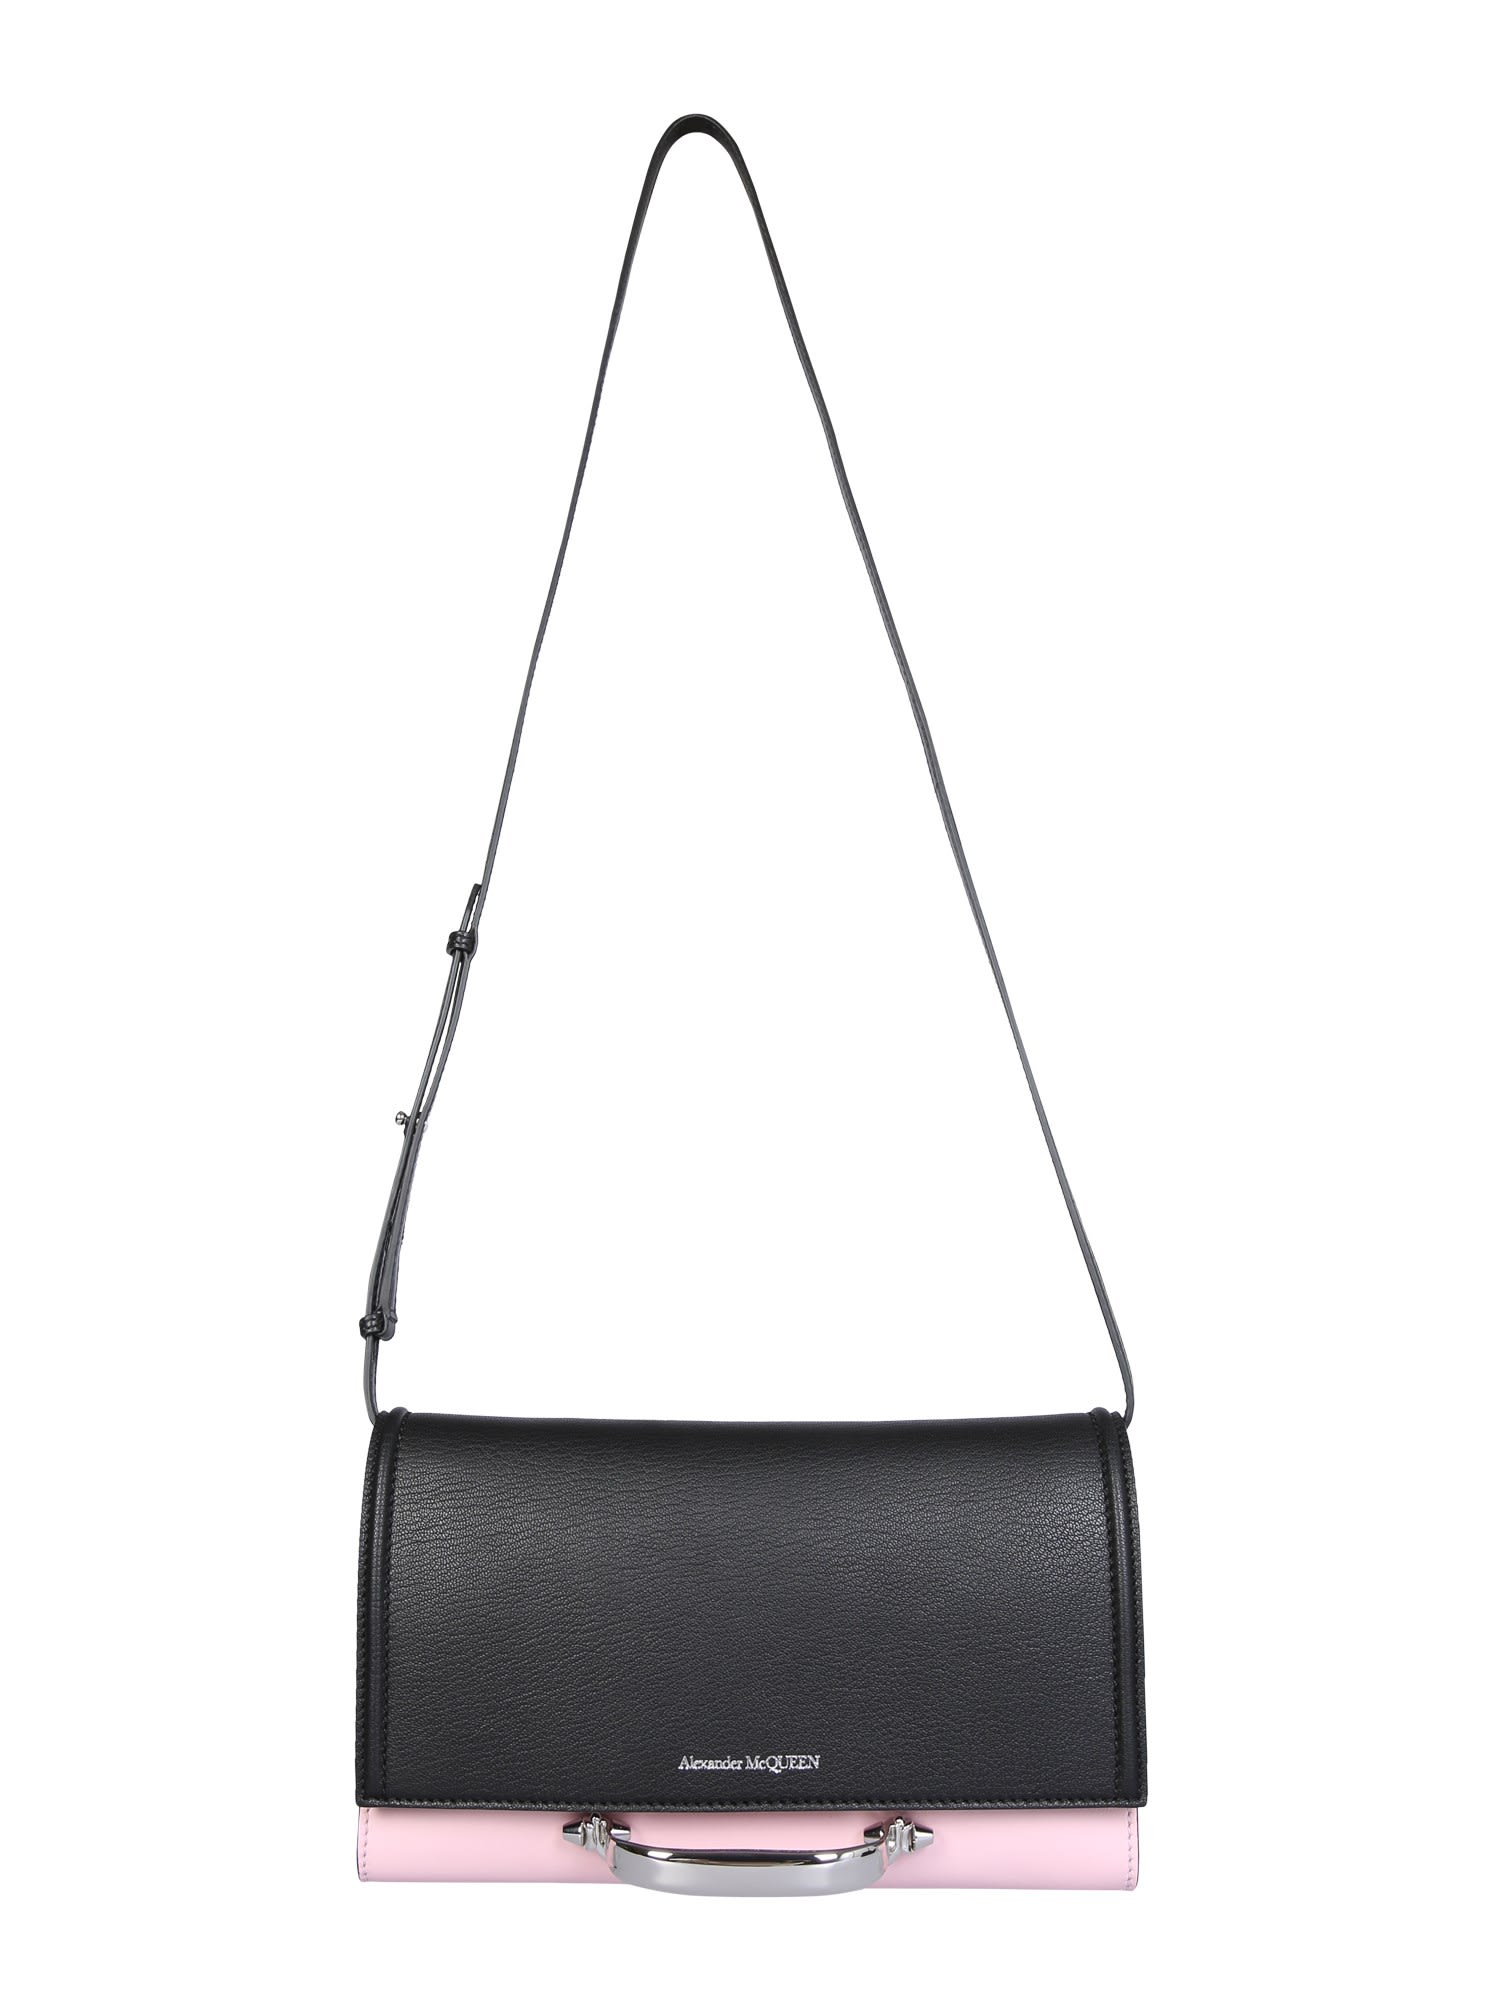 Alexander Mcqueen Leathers THE STORY BAG